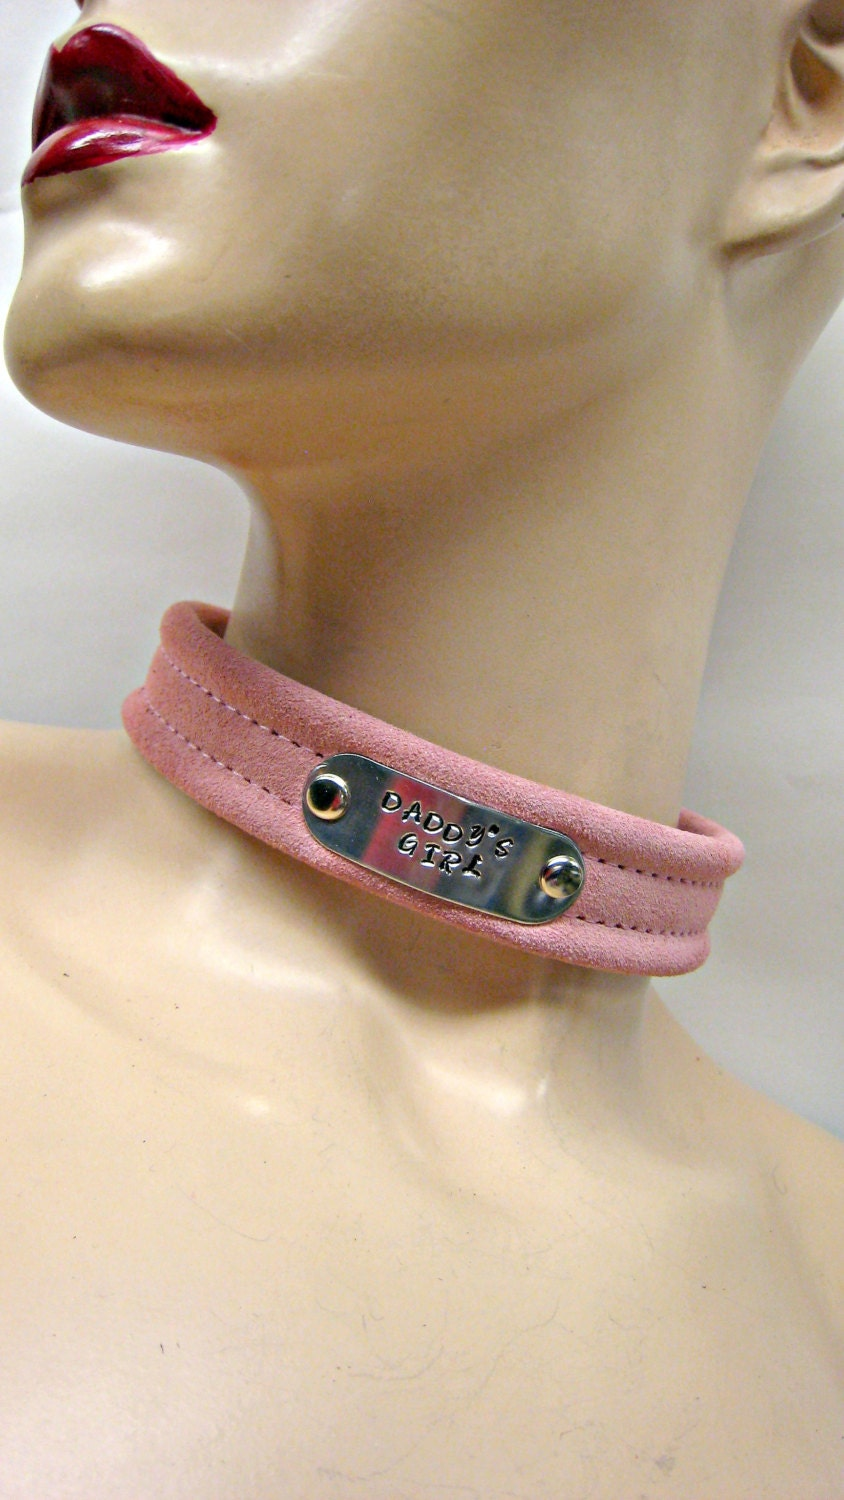 Weighs solid pink bondage collars and leads